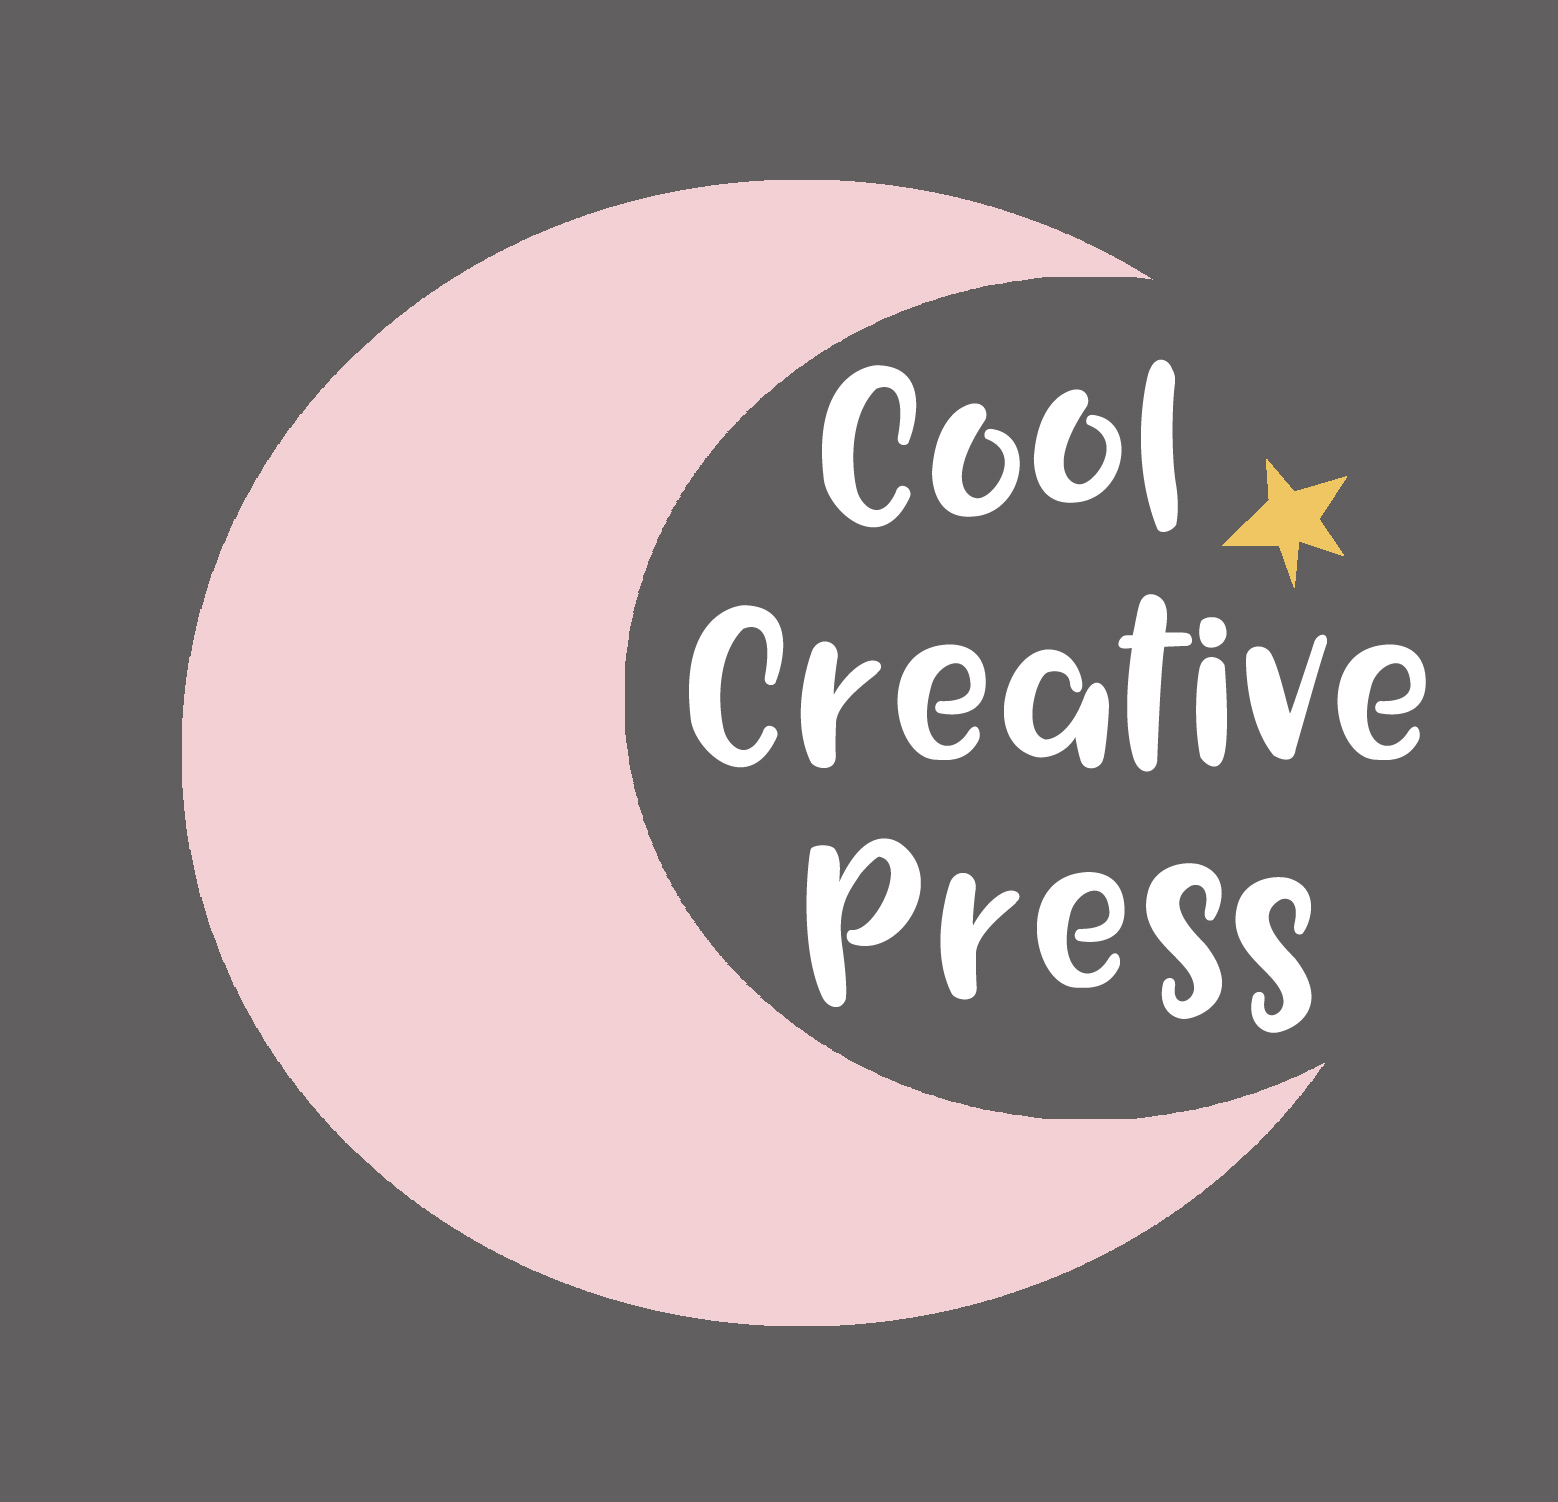 Cool Creative Press